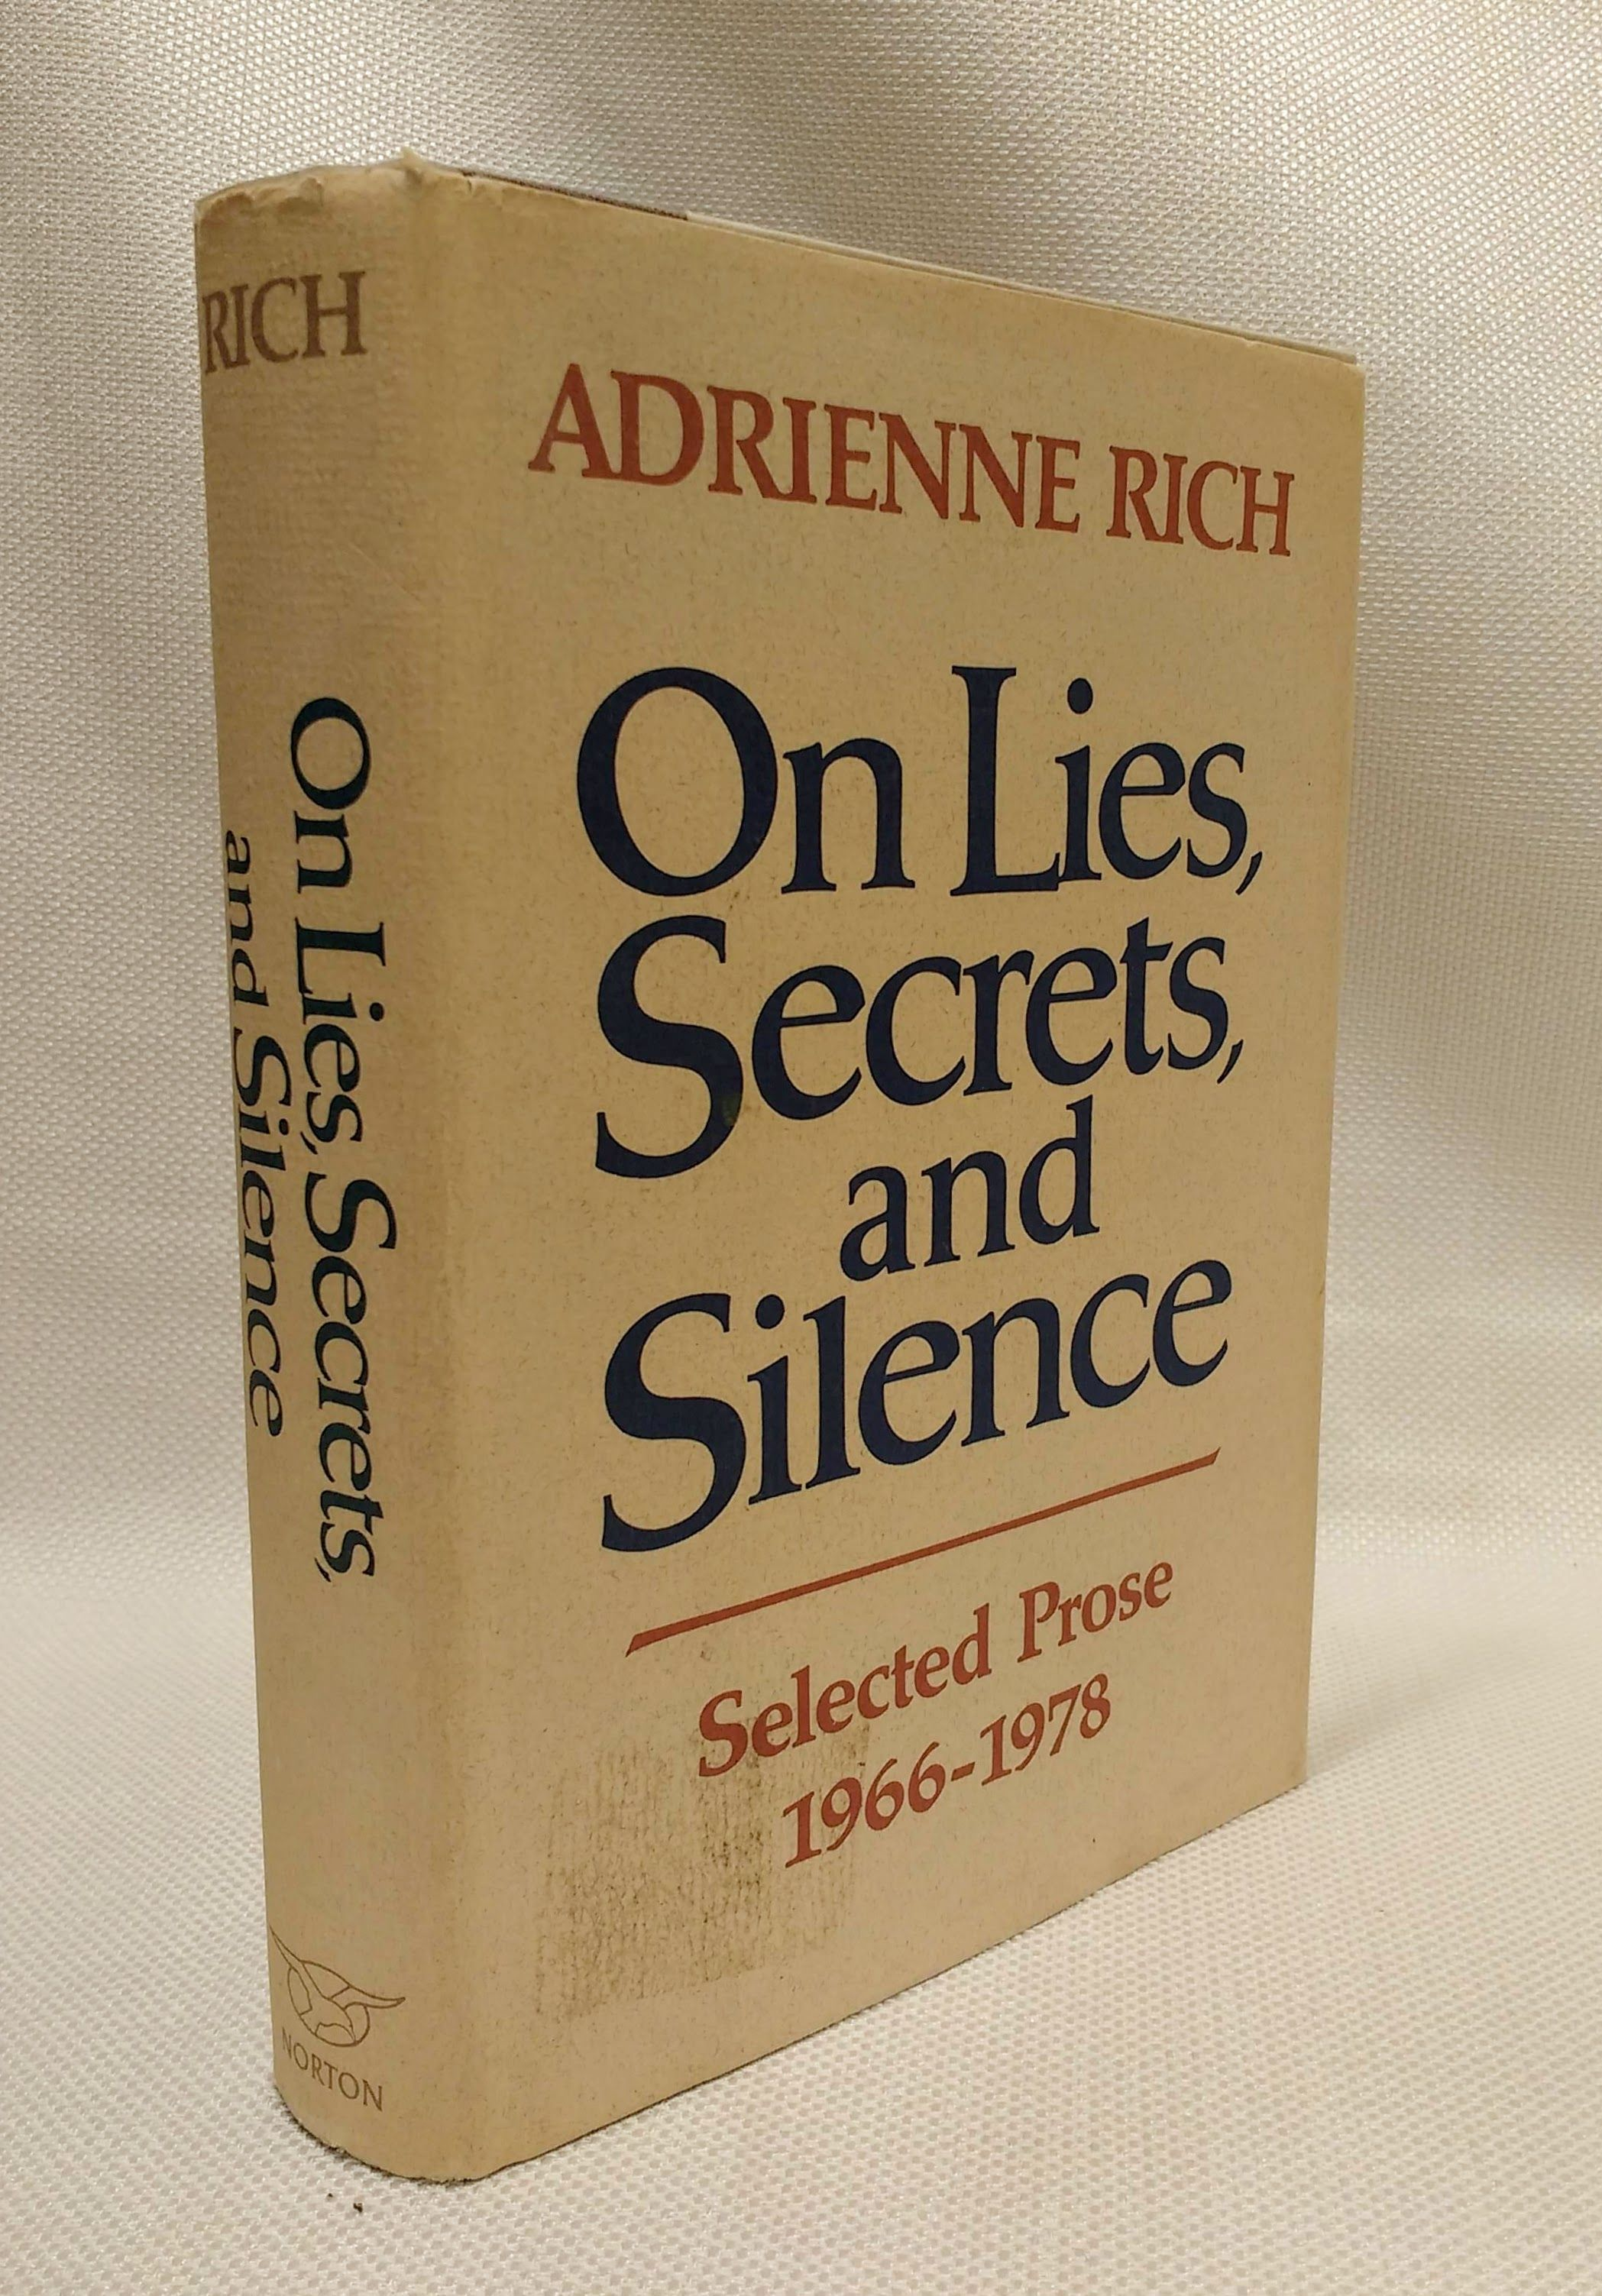 On Lies, Secrets, and Silence: Selected Prose 1966 - 1978, Adrienne Rich